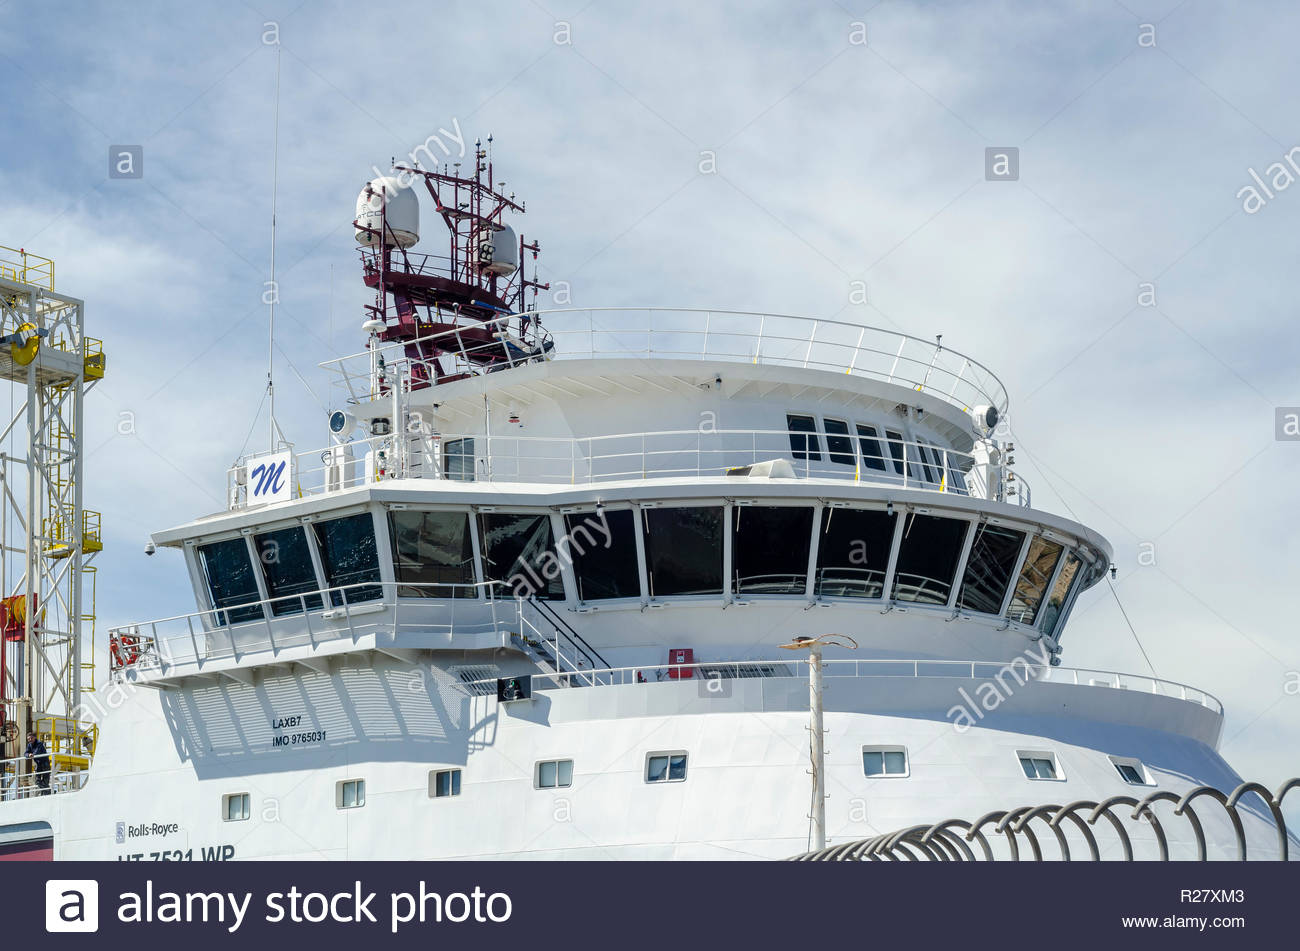 New Bedford, MA, USA - June 22, 2018: Bridge and drill rig of drilling vessel Dina Polaris towering overhead as ship transits hurricane barrier - Stock Image